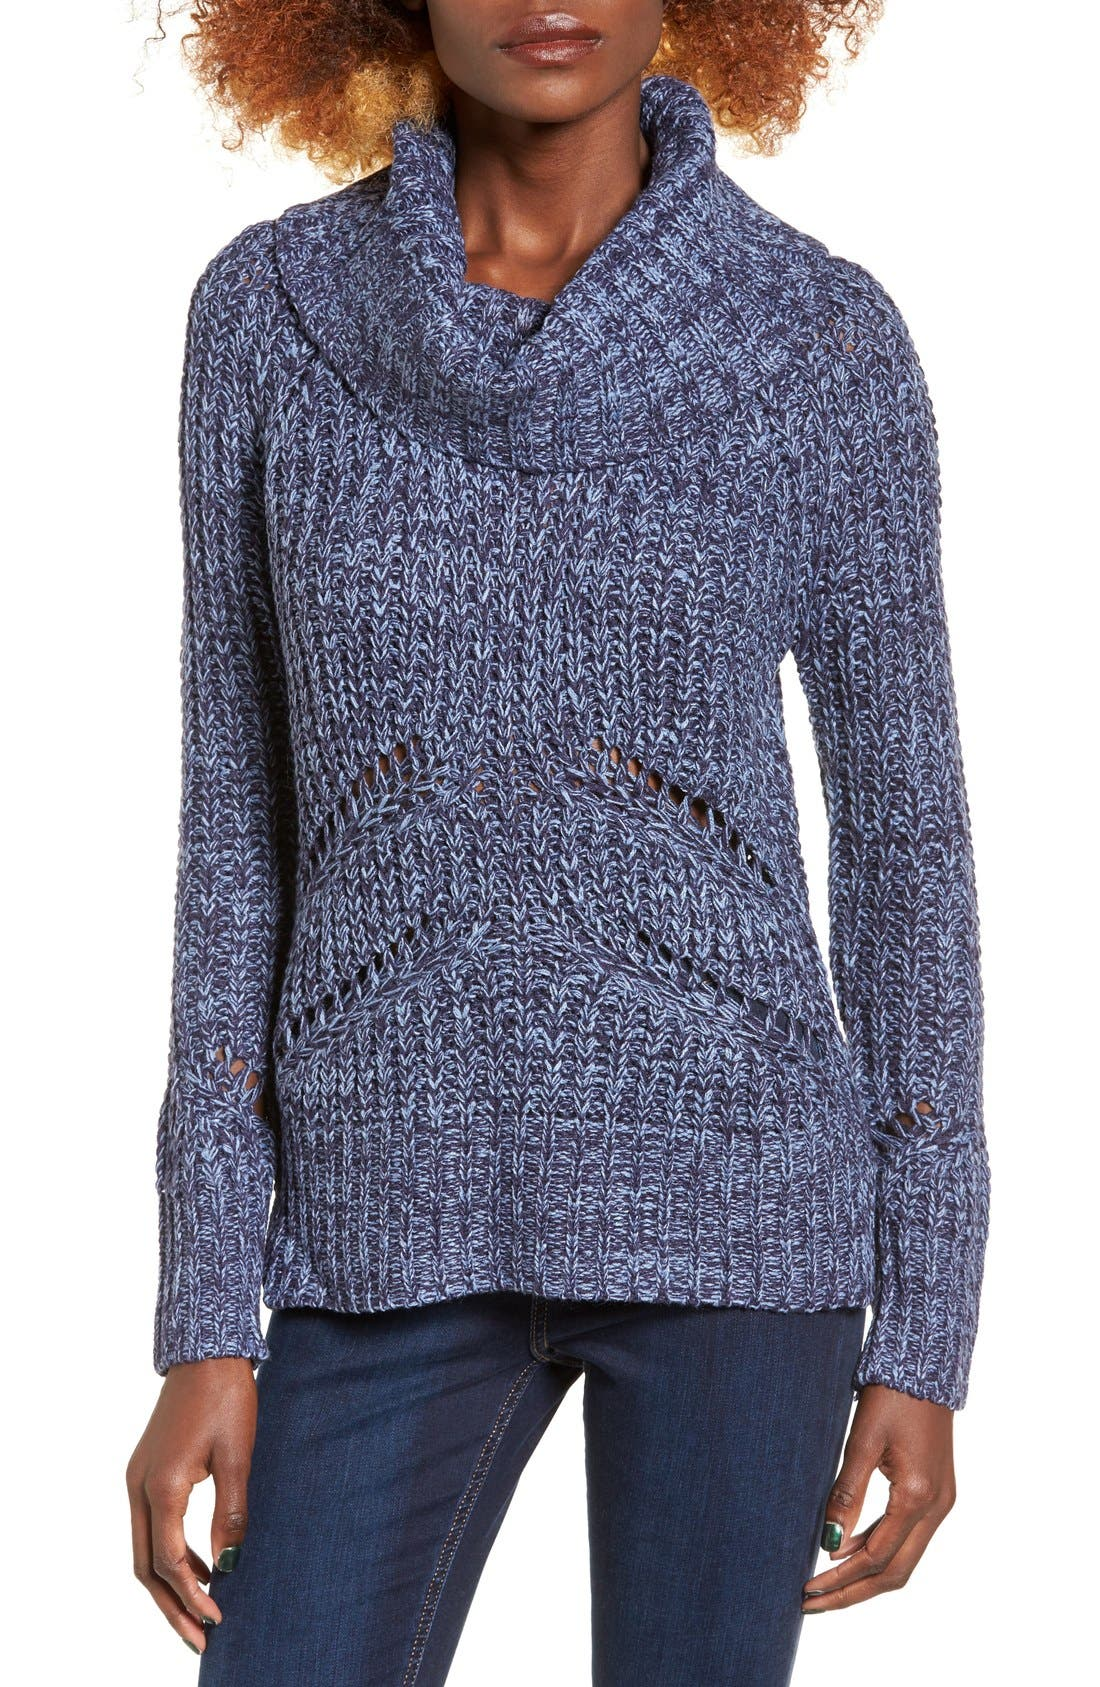 Alternate Image 1 Selected - Love by Design Marled Cowl Neck Pullover